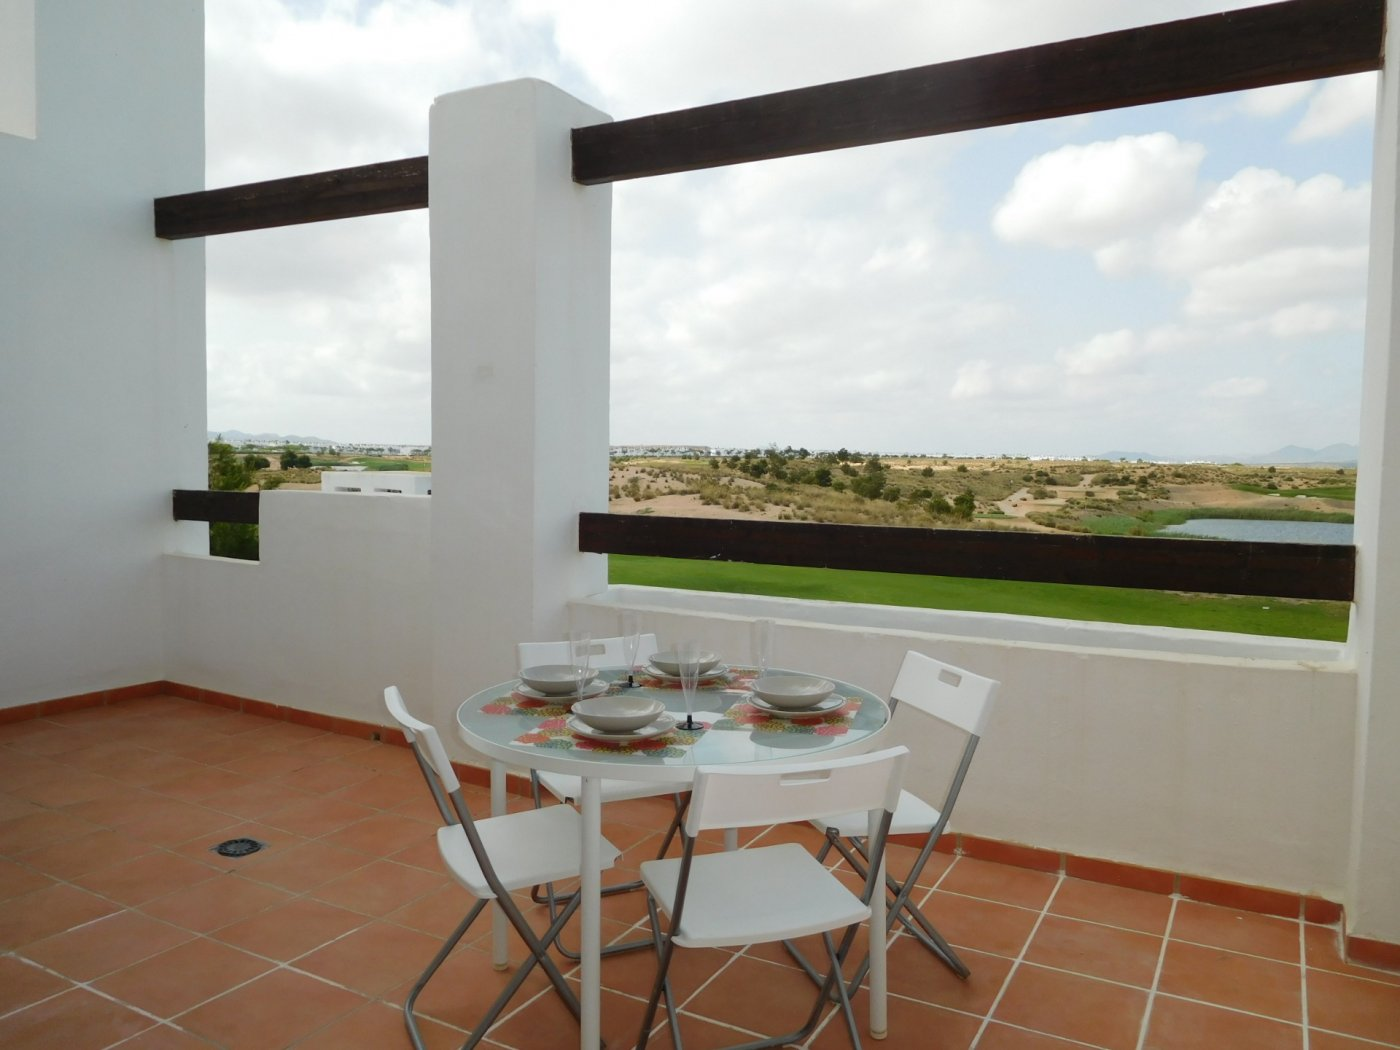 Gallery Image 11 of Apartment For rent in Condado De Alhama, Alhama De Murcia With Pool